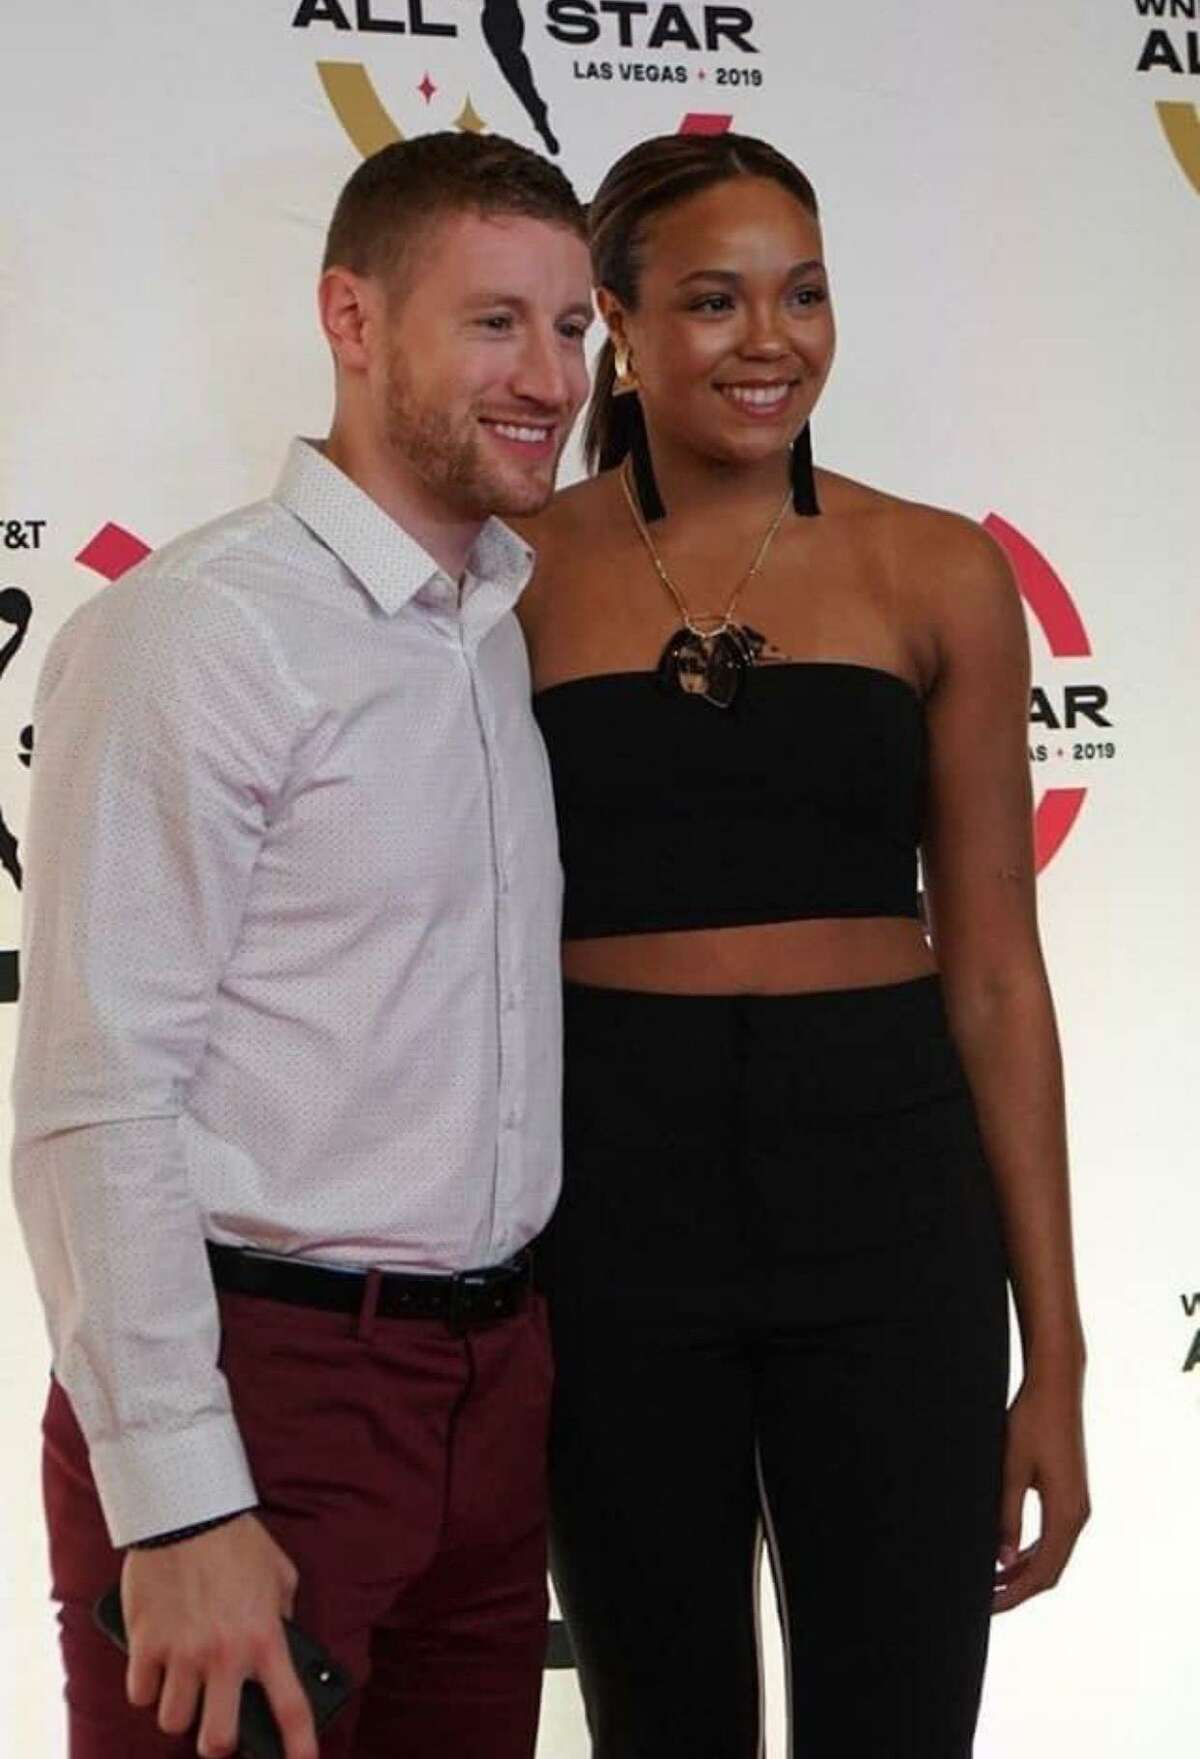 Basketball trainer Alex Bazzell, left, and his fiance, Lynx star Napheesa Collier, attend the 2019 WNBA All-Star game in Las Vegas.